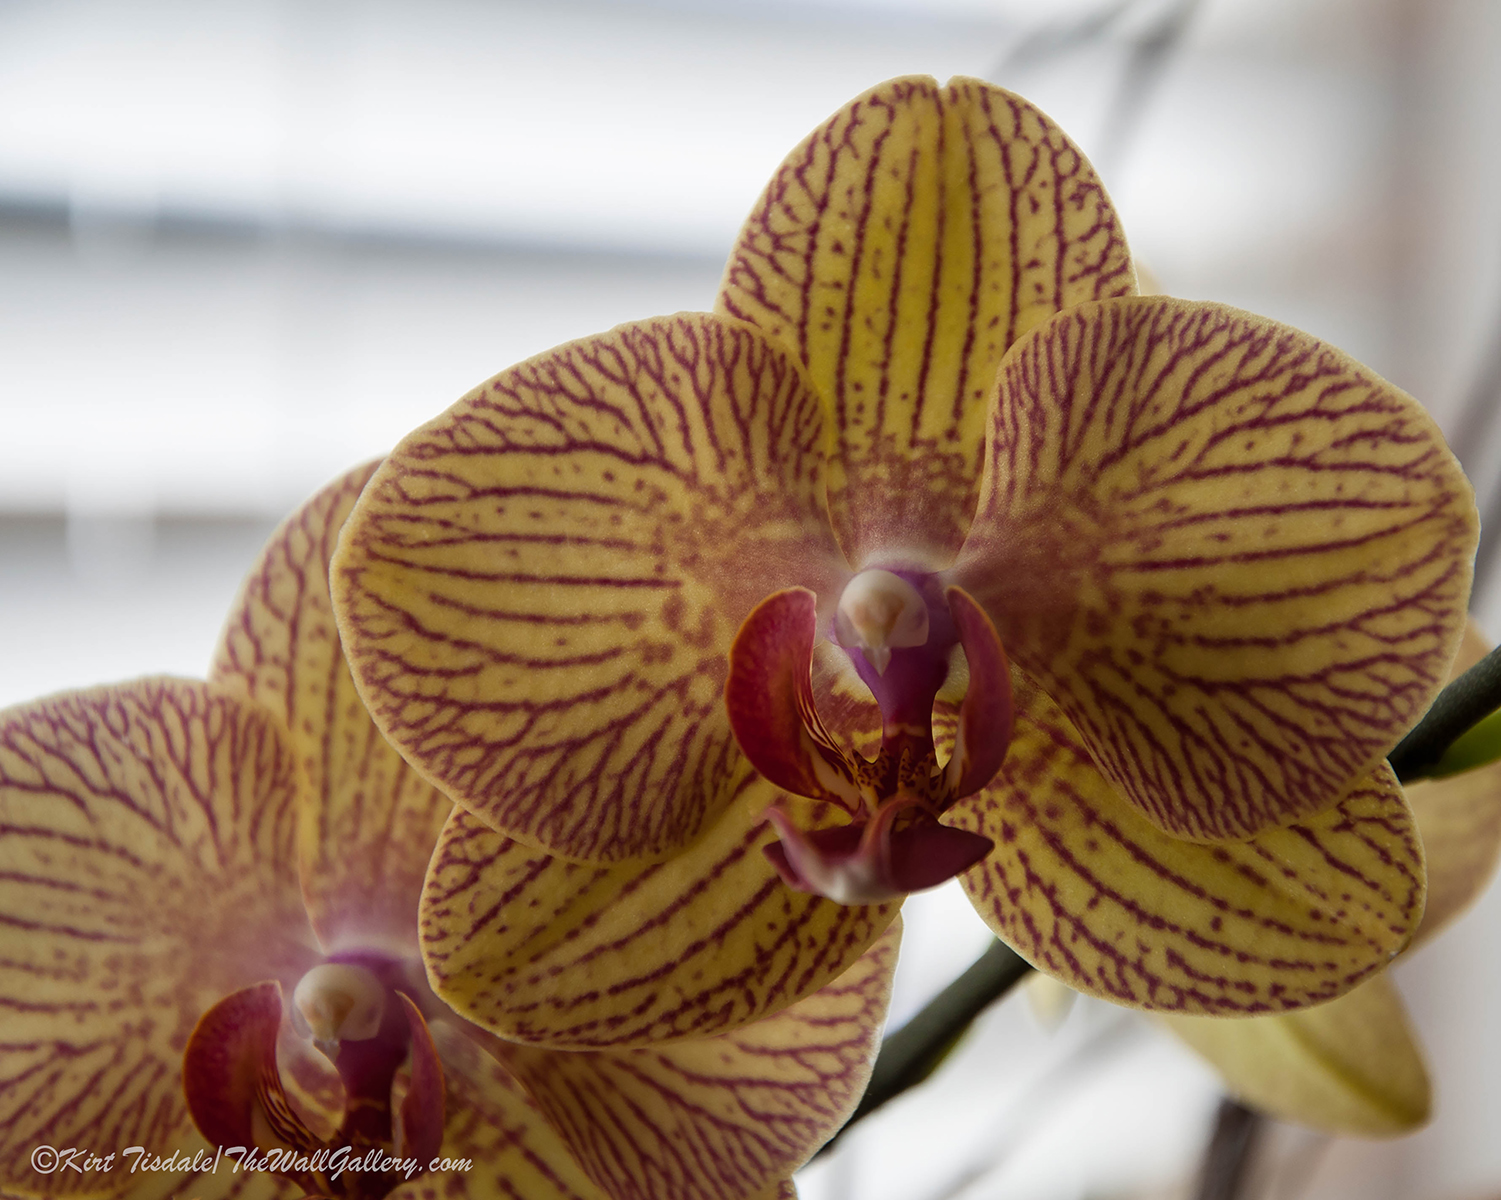 Red Veined Orchid 4